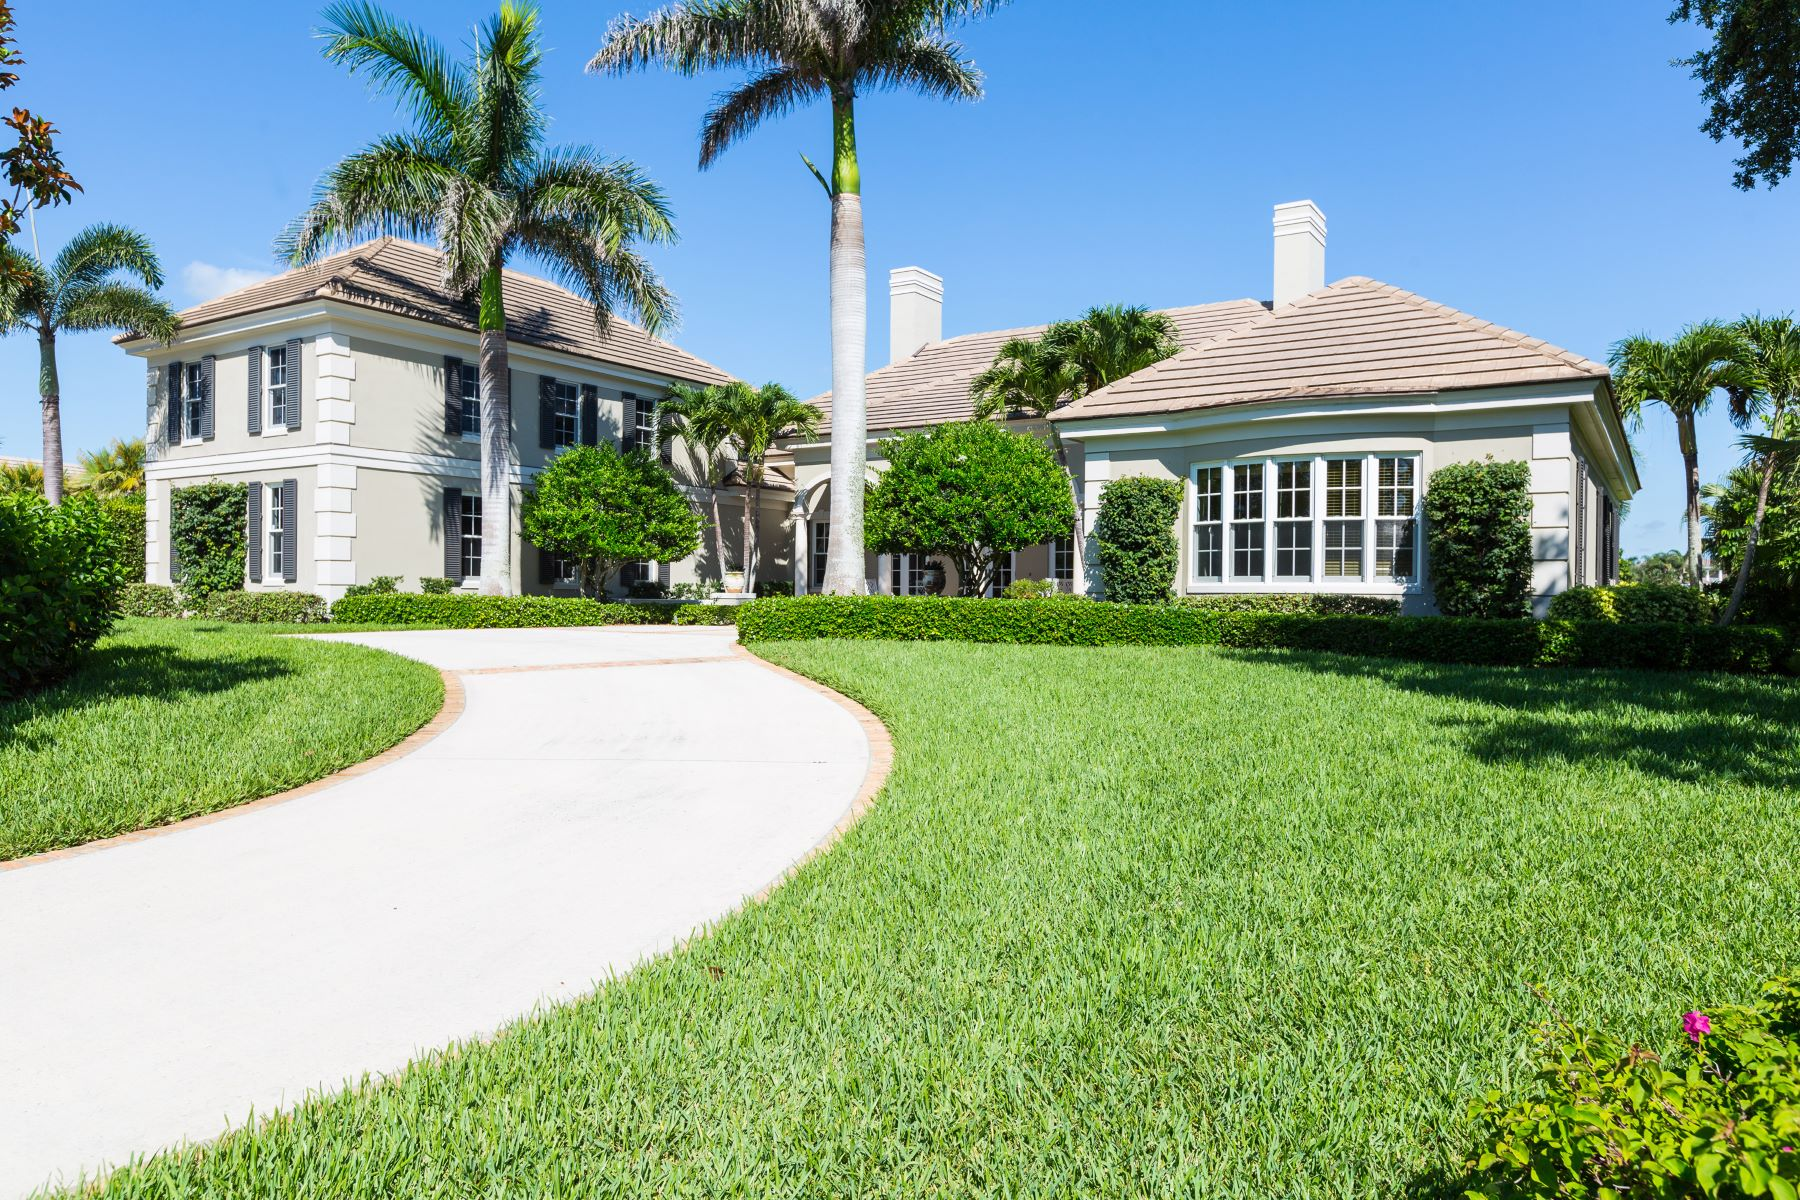 Single Family Homes for Sale at Beautiful West Indies Style Estate with Spectacular Golf Course Views 350 Westwind Court Vero Beach, Florida 32963 United States